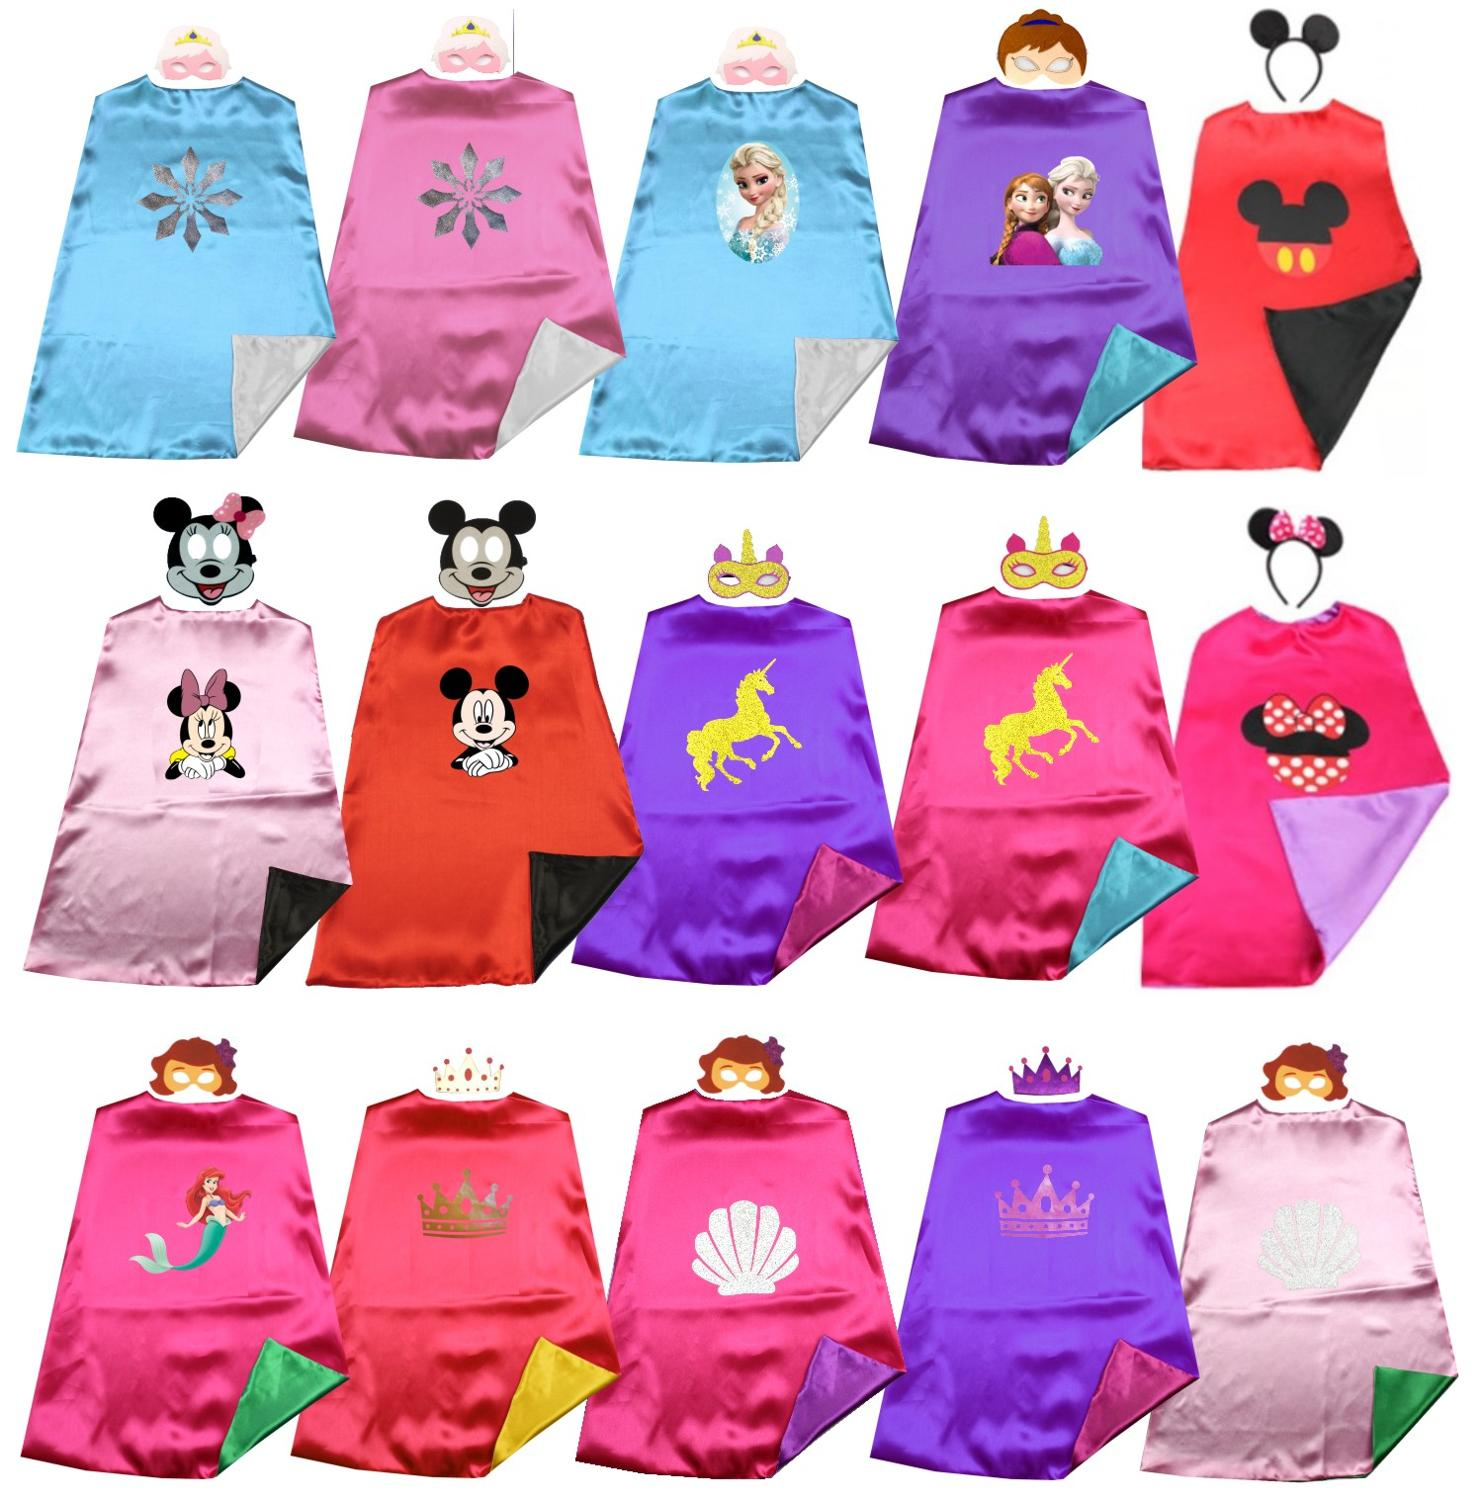 Girls SuperHero Cape Unicorn Cape kids capes Prince &Princesscape Christmas gift, unicorn horn, christmas gift